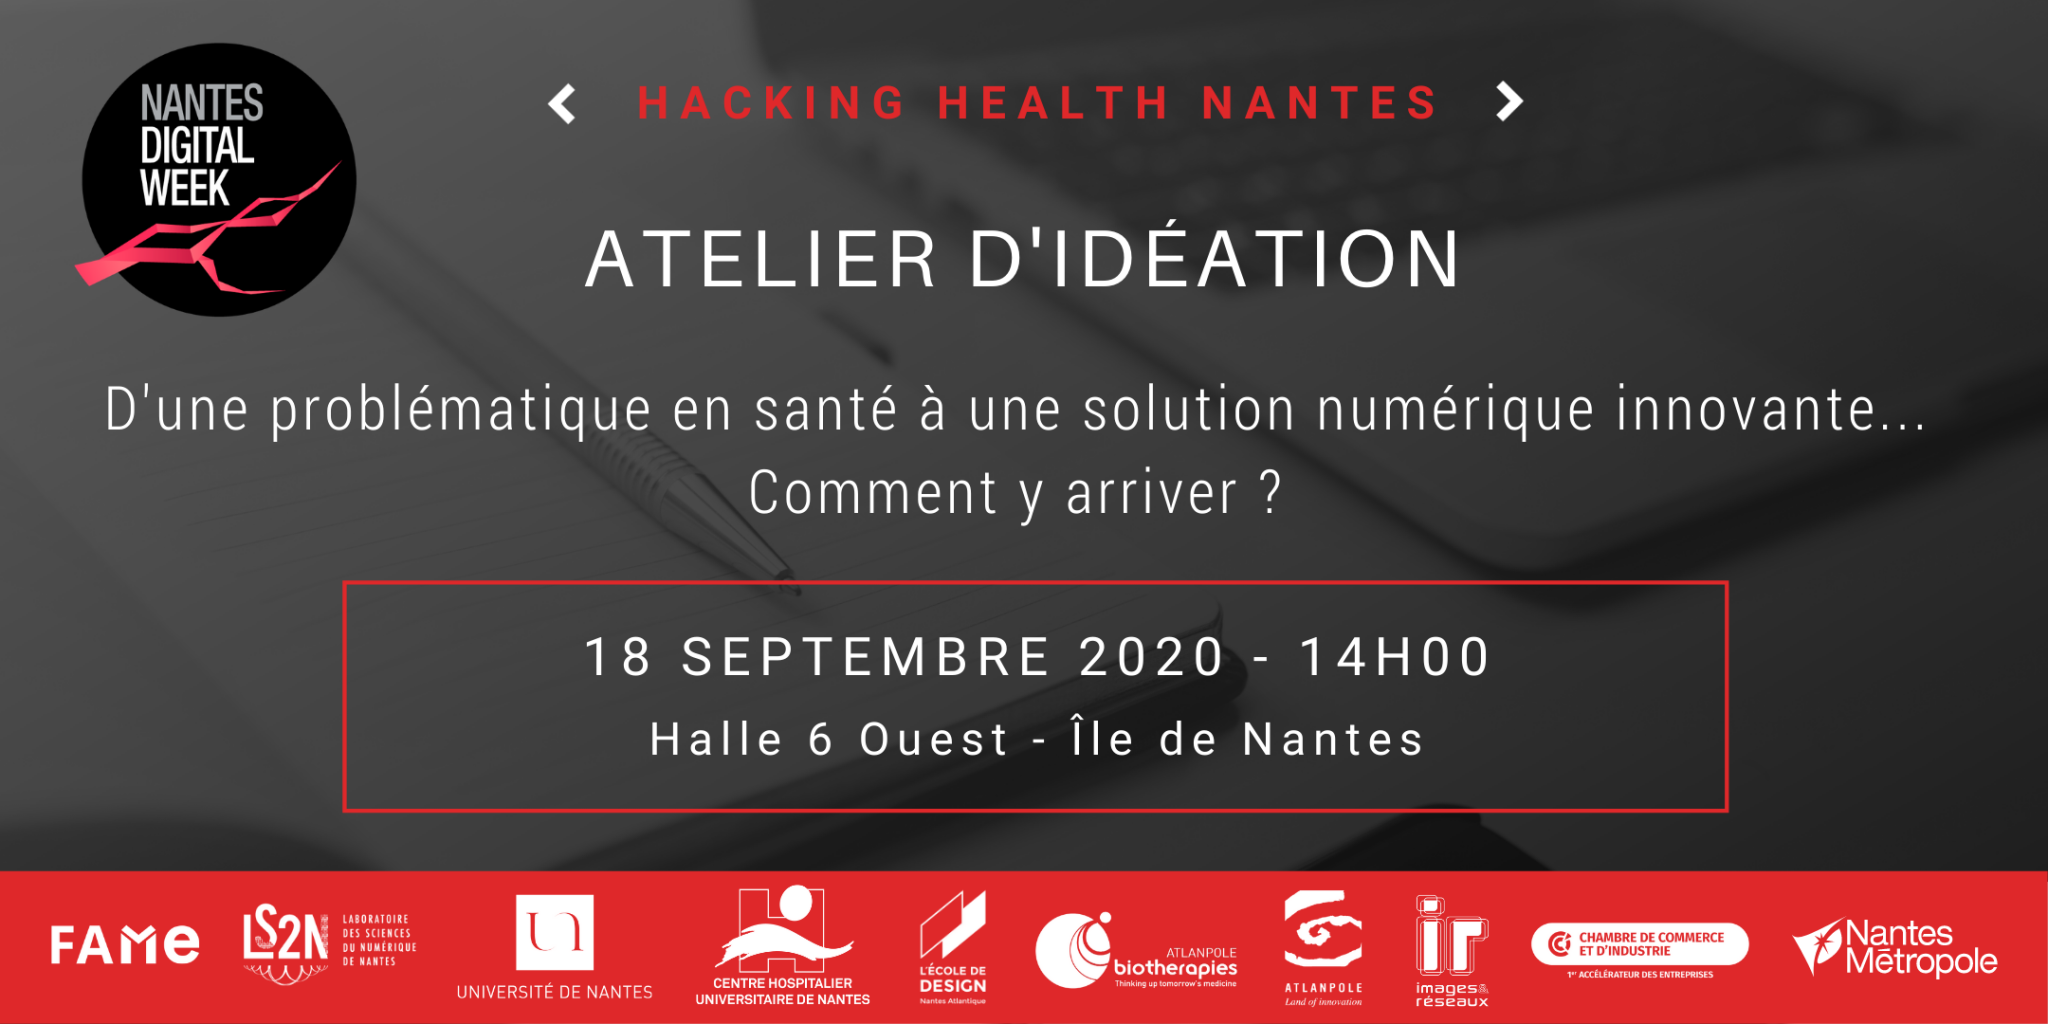 Atelier d'idéation Hacking Health